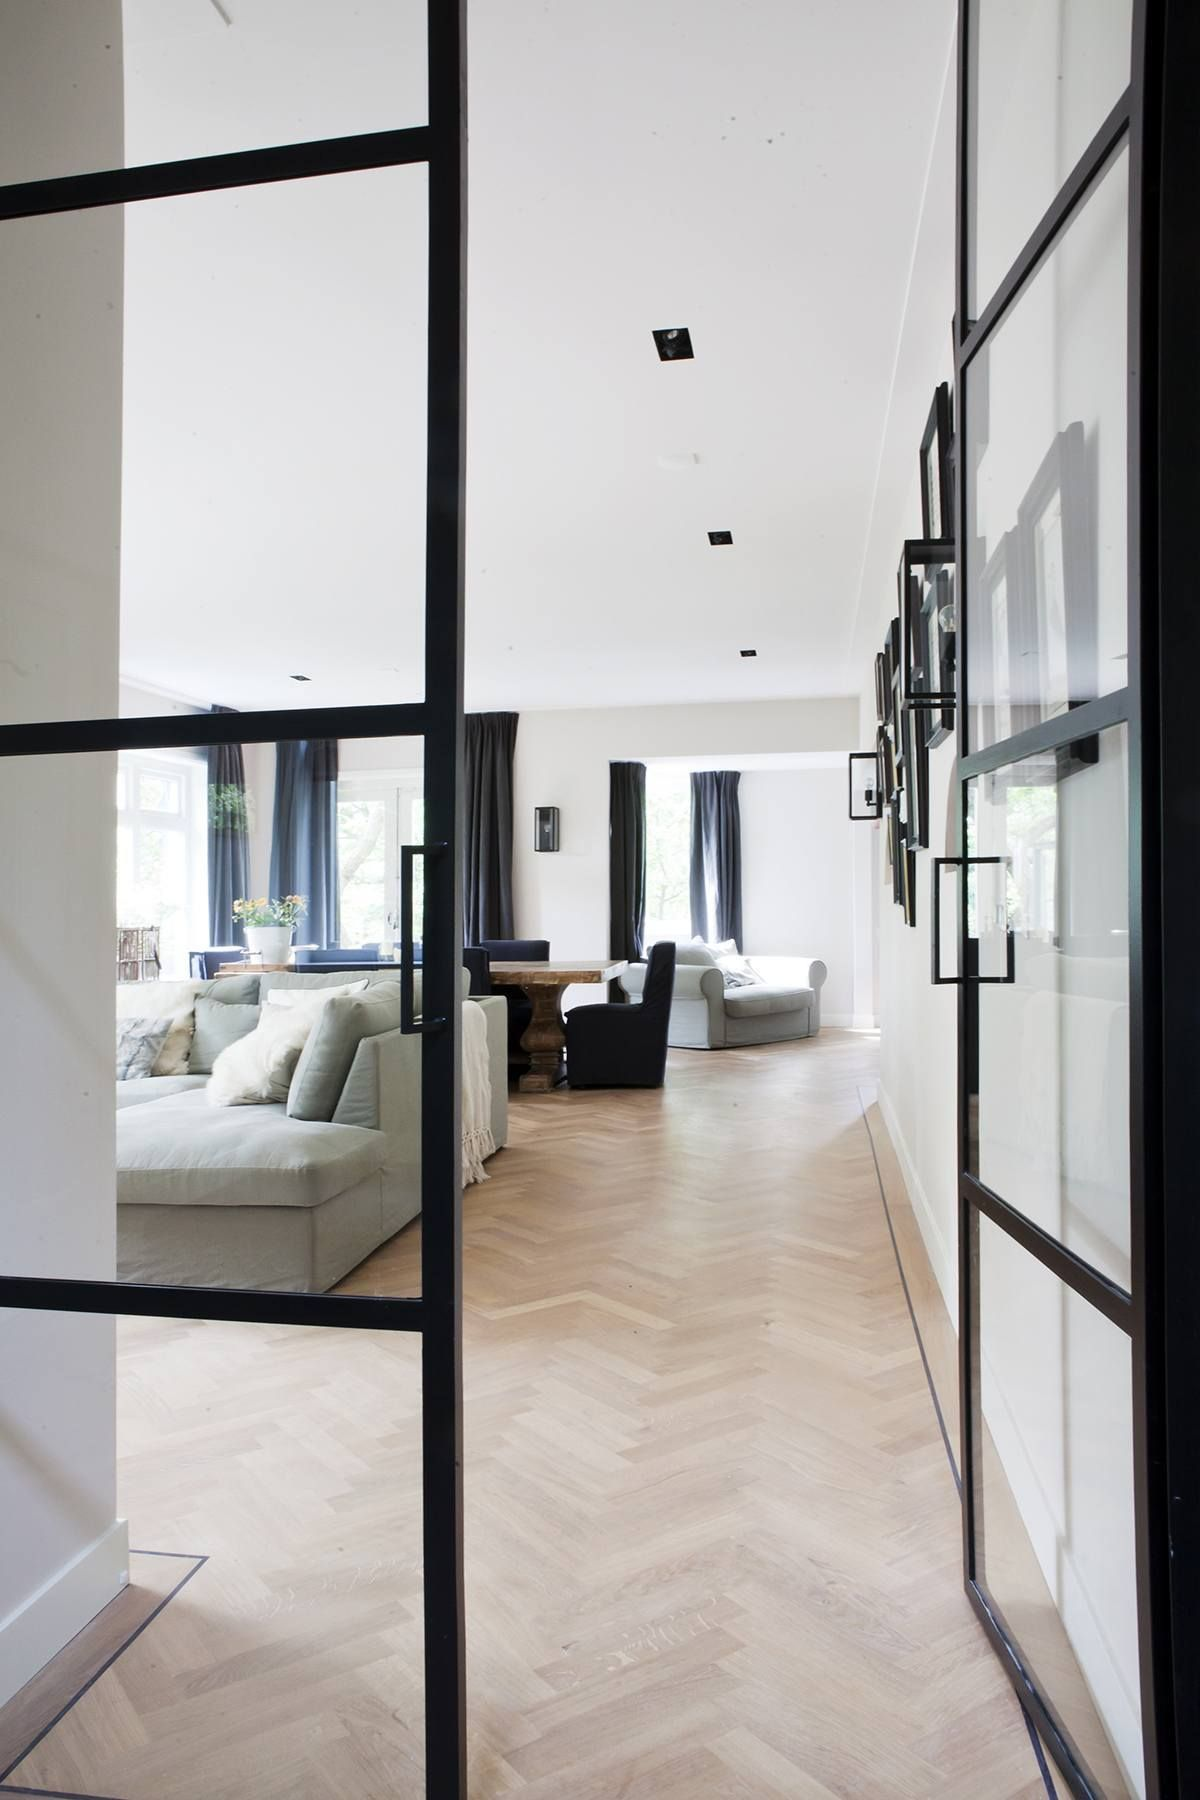 Simple house interior design ideas project residential location haarlem  the netherlands work